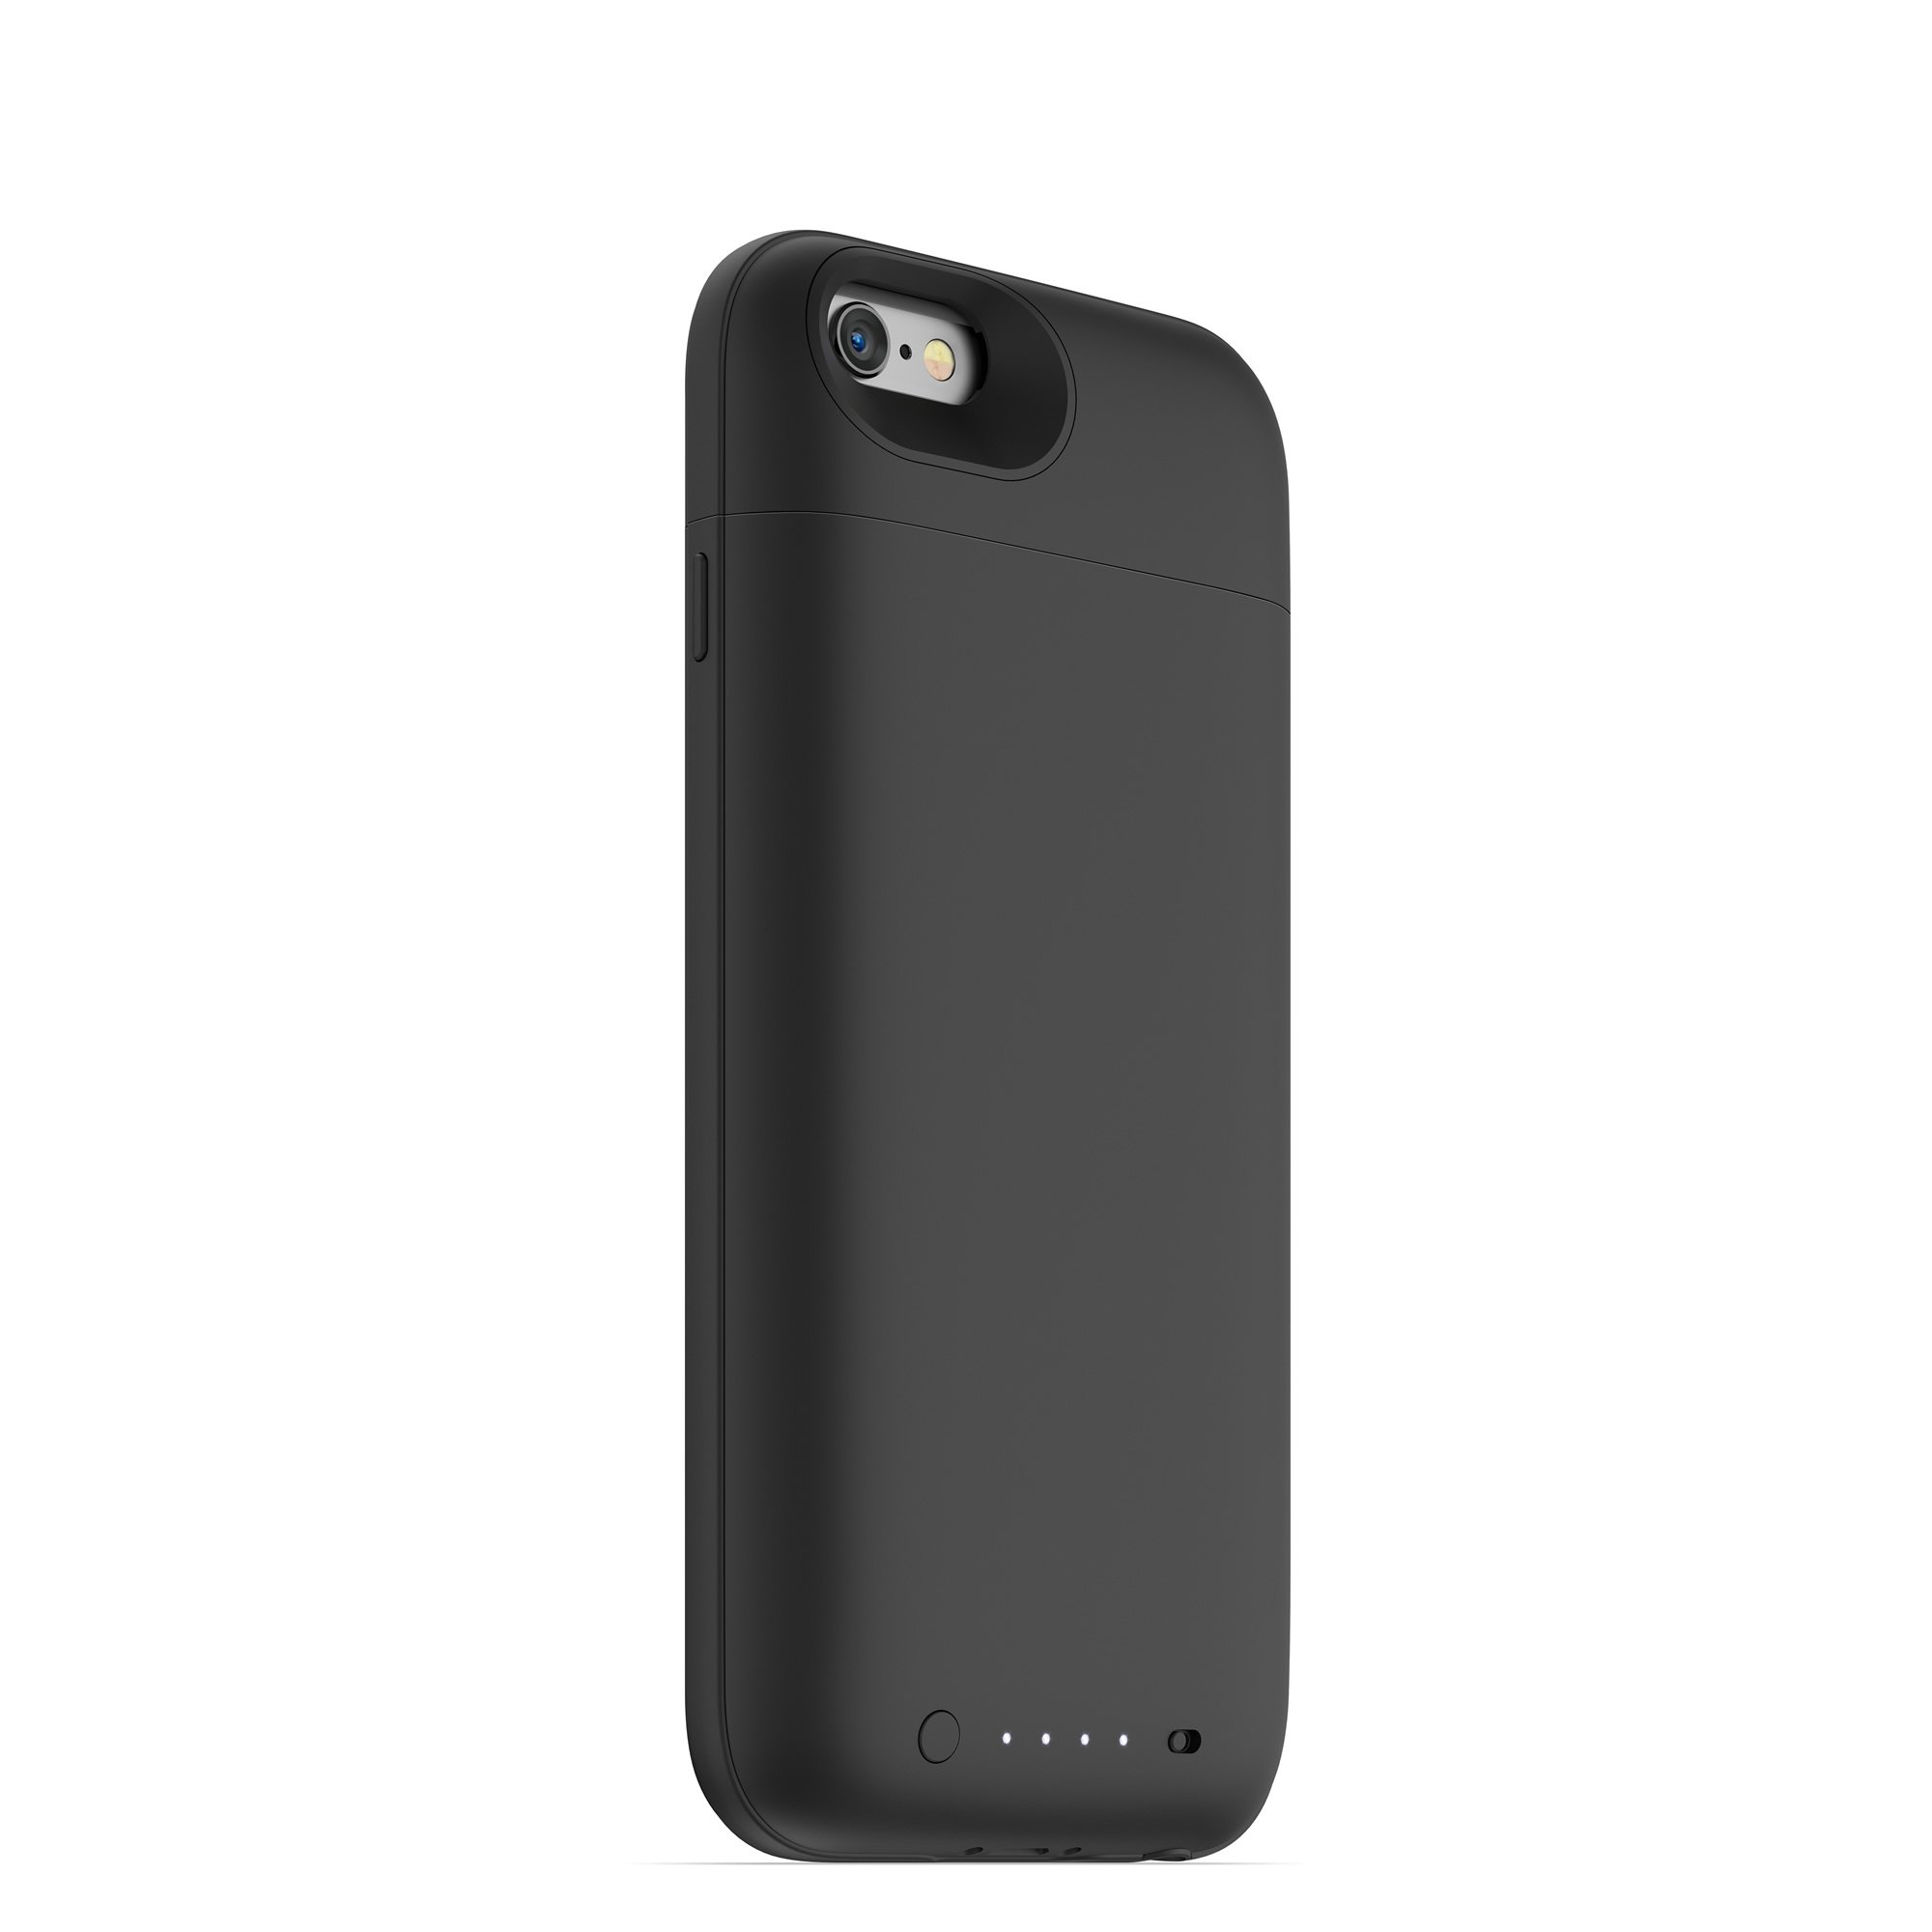 mophie juice pack air - Slim Protective Mobile Battery Pack Case for iPhone 6/6s - Black by mophie (Image #5)